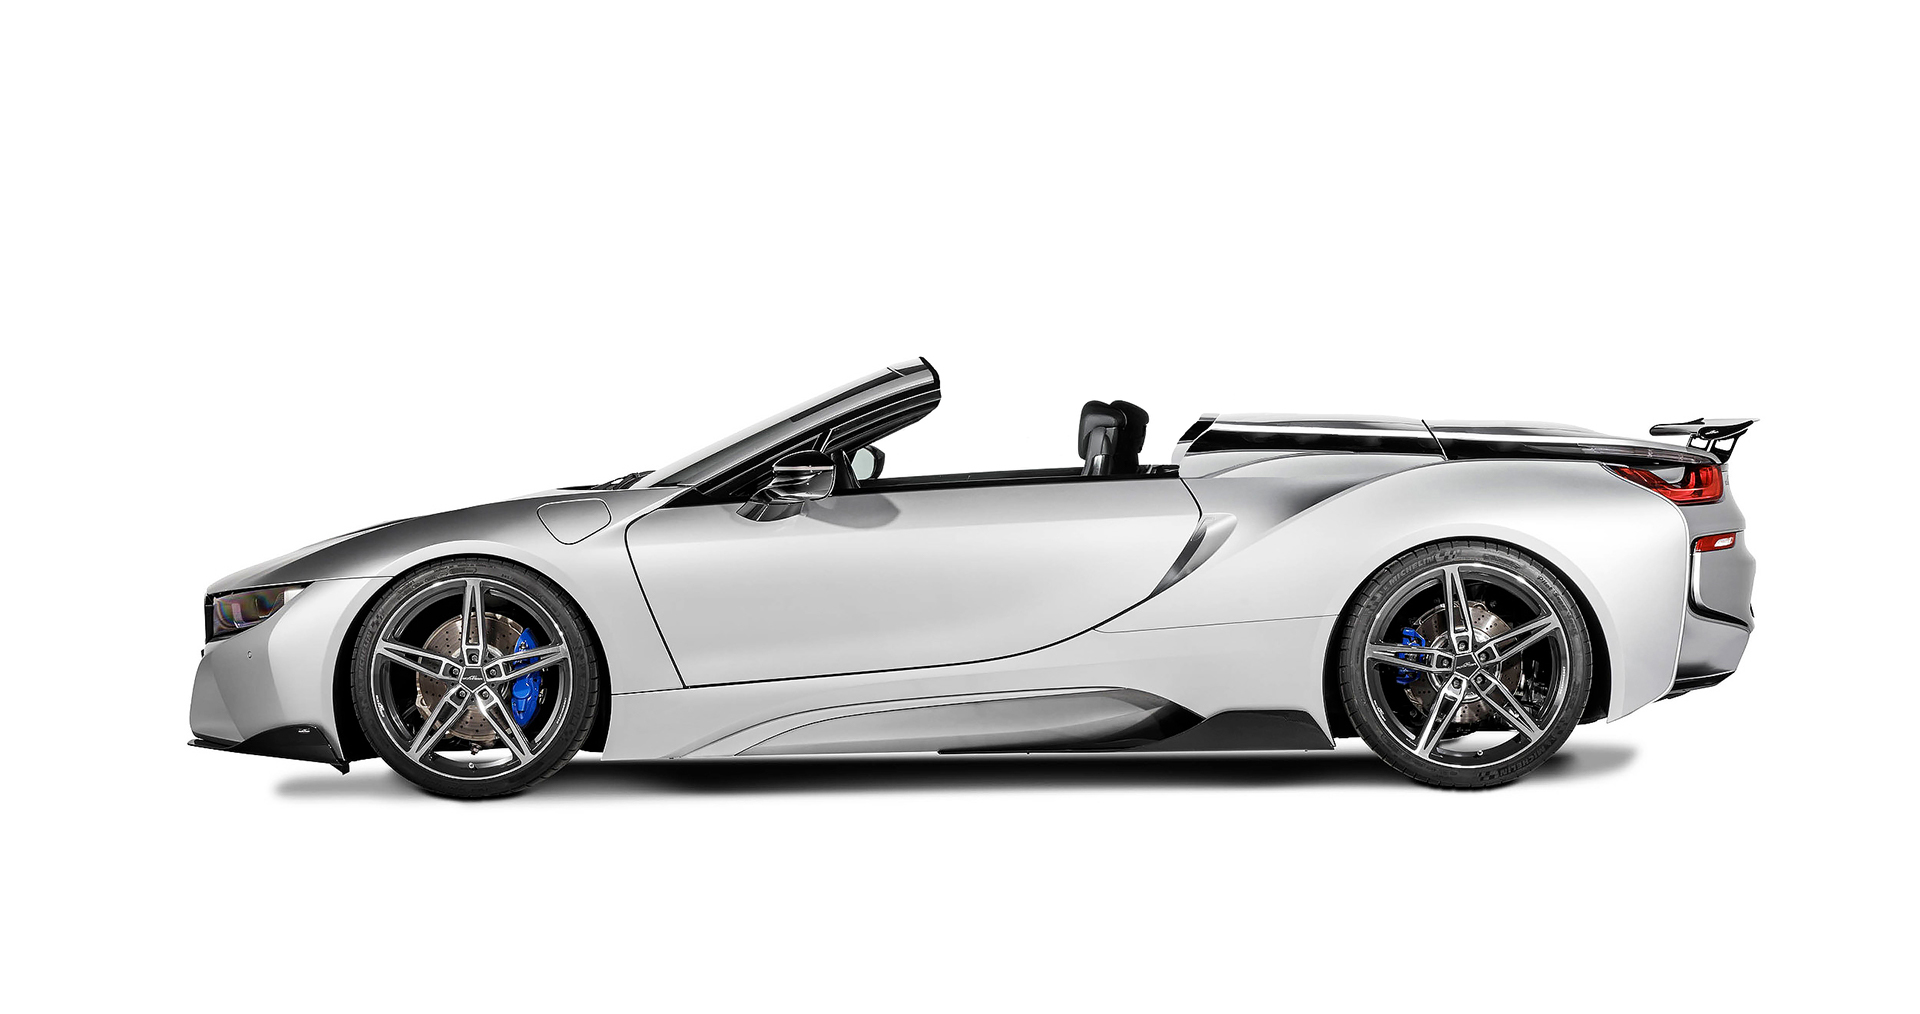 Nce Custom Convertibles Automotive Design Amp Engineering